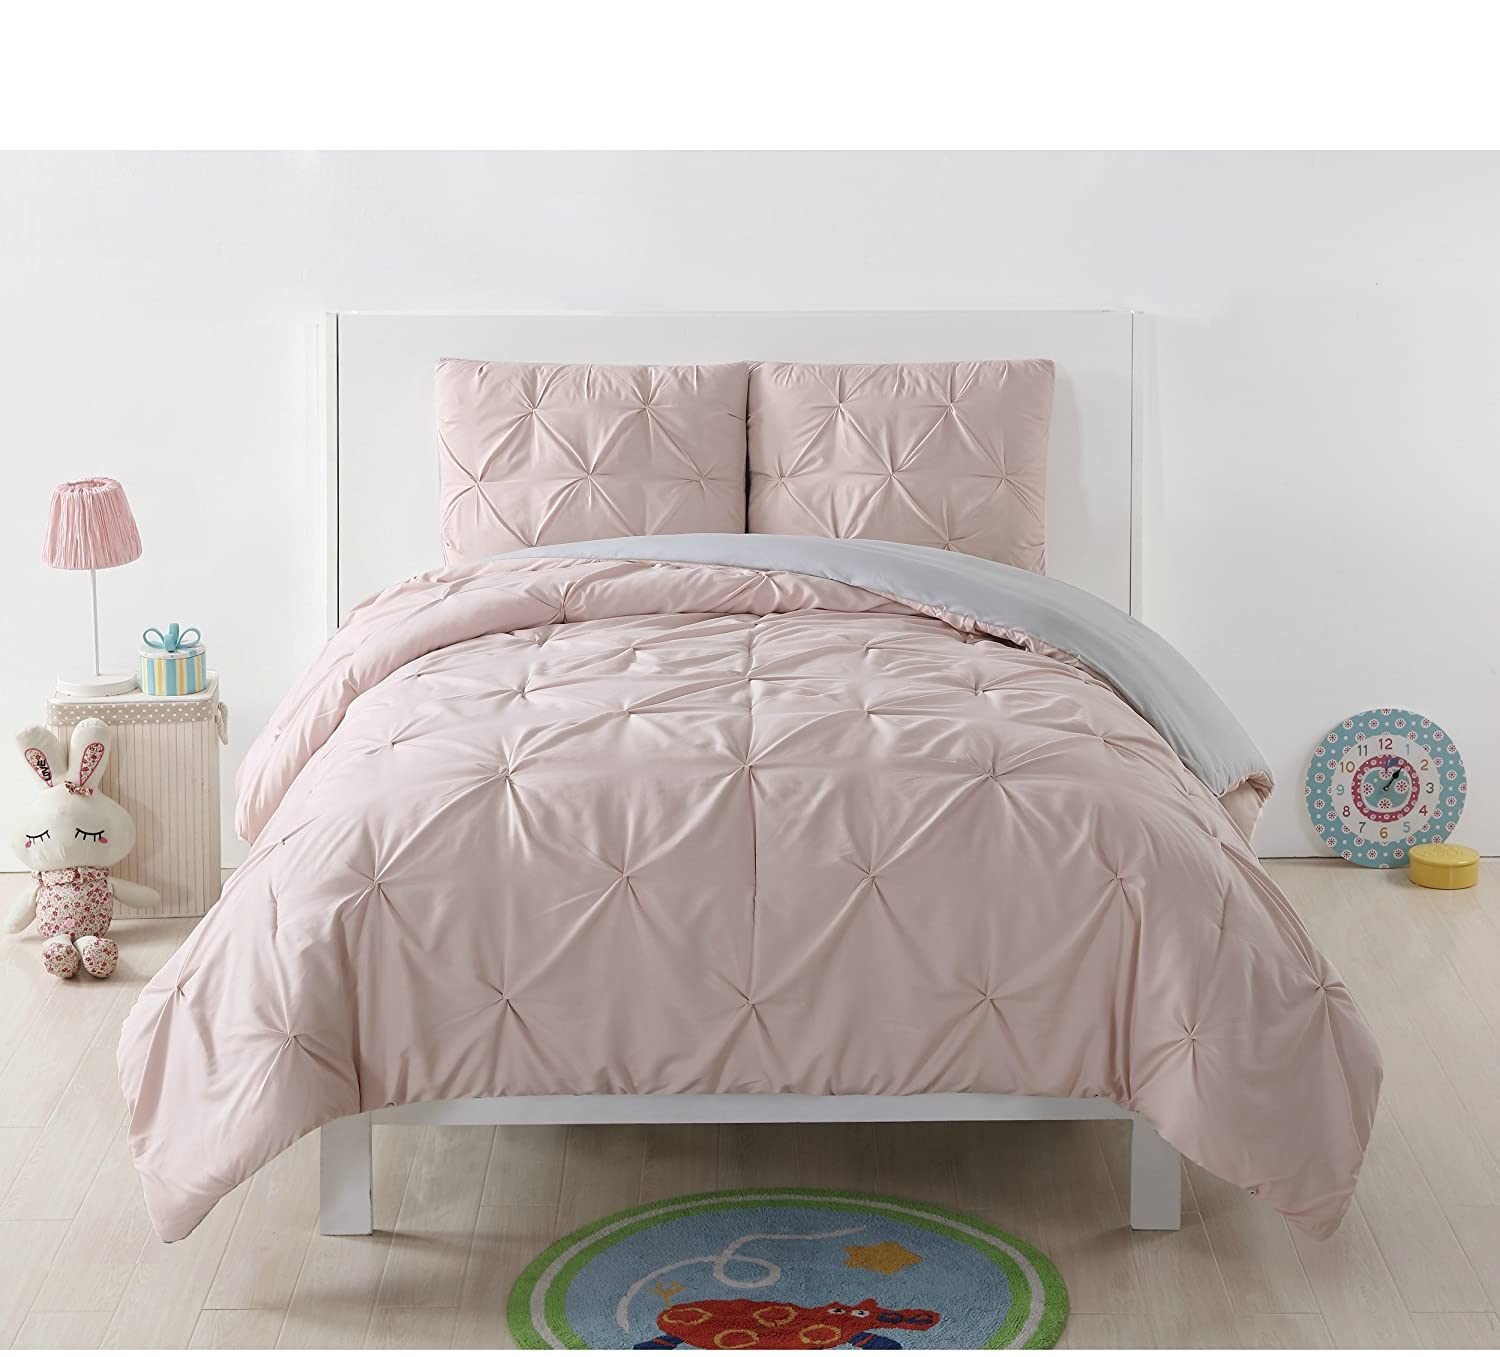 2 Piece Blush/Silver Grey Twin XL Comforter Set, Reversible Bedding, Kids Bedroom Decor, Solid Color Pattern, Super-Soft, Pinch Pleated, Classic Style, All-Season, Machine Wash, Pink/Cloud, Polyester